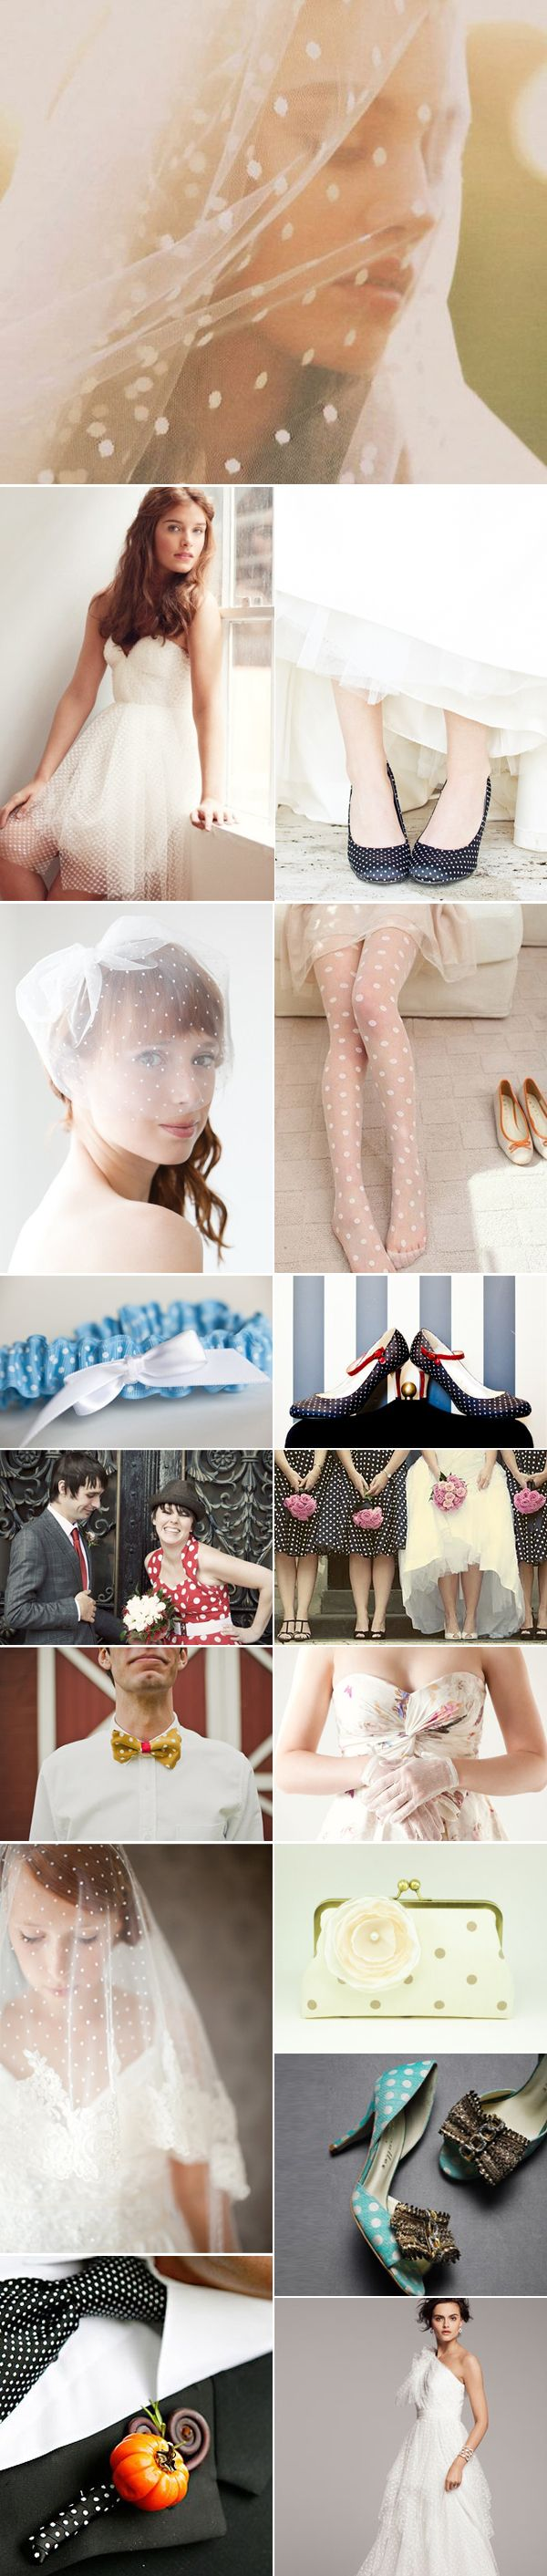 39 Polka-Dot Wedding Inspirations - Apparel